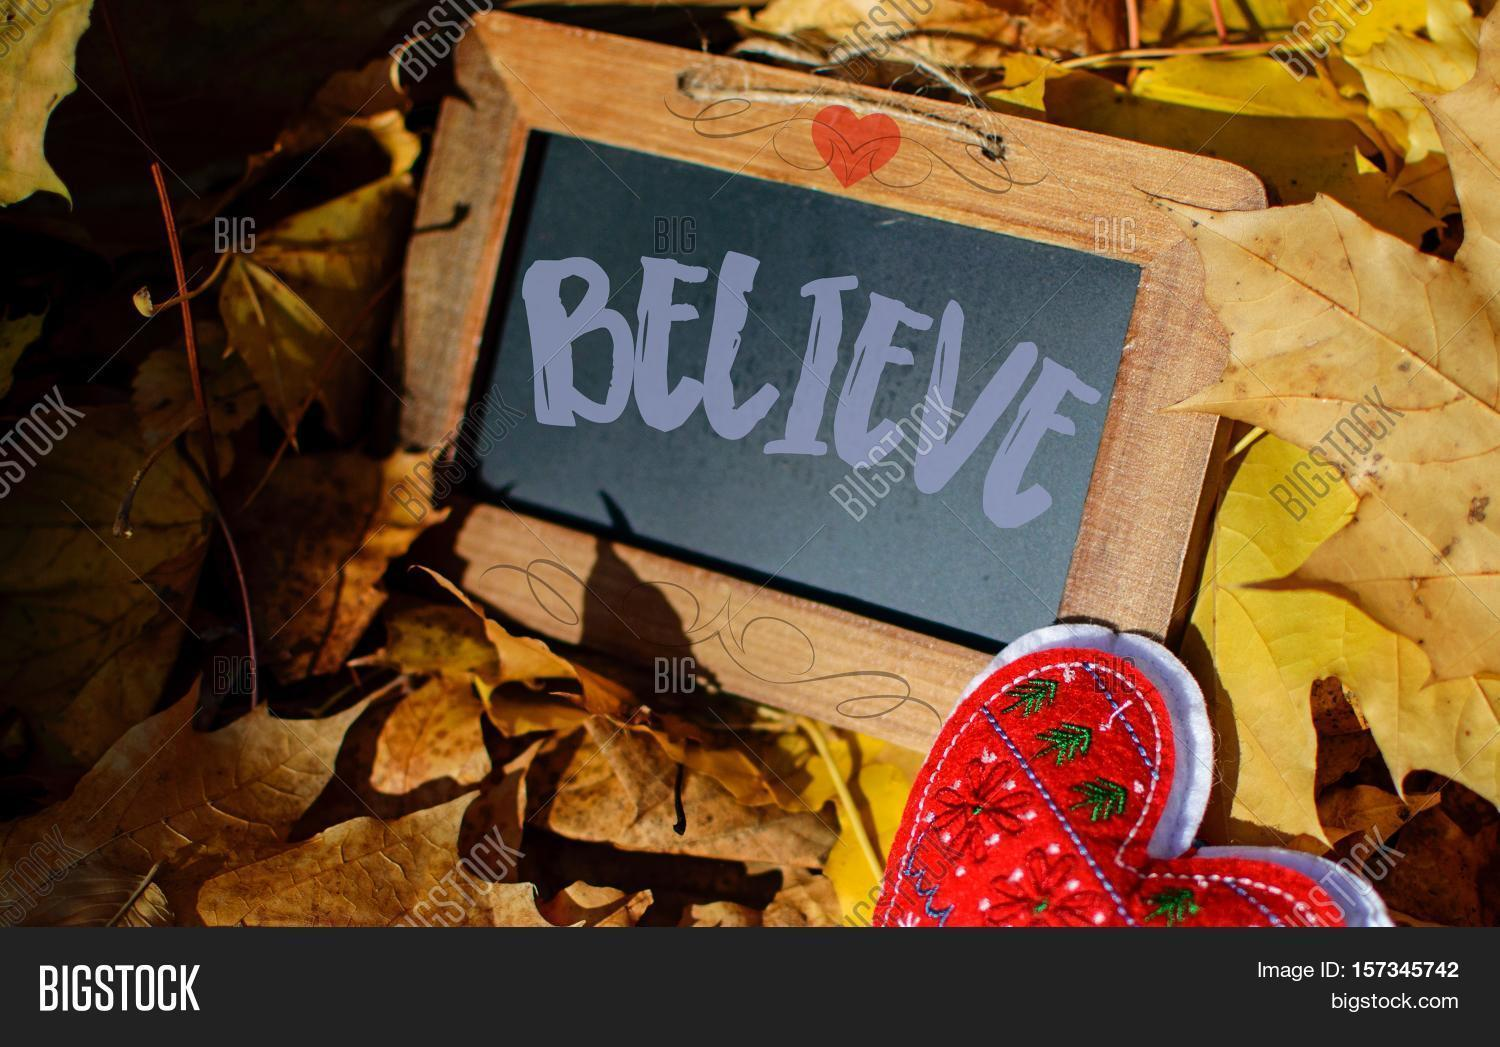 Believe,yourself,dream,dreamy,autumn,end,season,new,beginnings,card,blank,copy,space,chalk,board,wood,rustic,love,heart,shape,foliage,confidence,success,chances,take,risk,happiness,warm,scroll,make,difference,giving,Tuesday,postcard,note,encouragement,pile,charity,donation,nature,life,lifestyle,empower,message,writing,conceptual,motivational,affirmation,fall,fallen